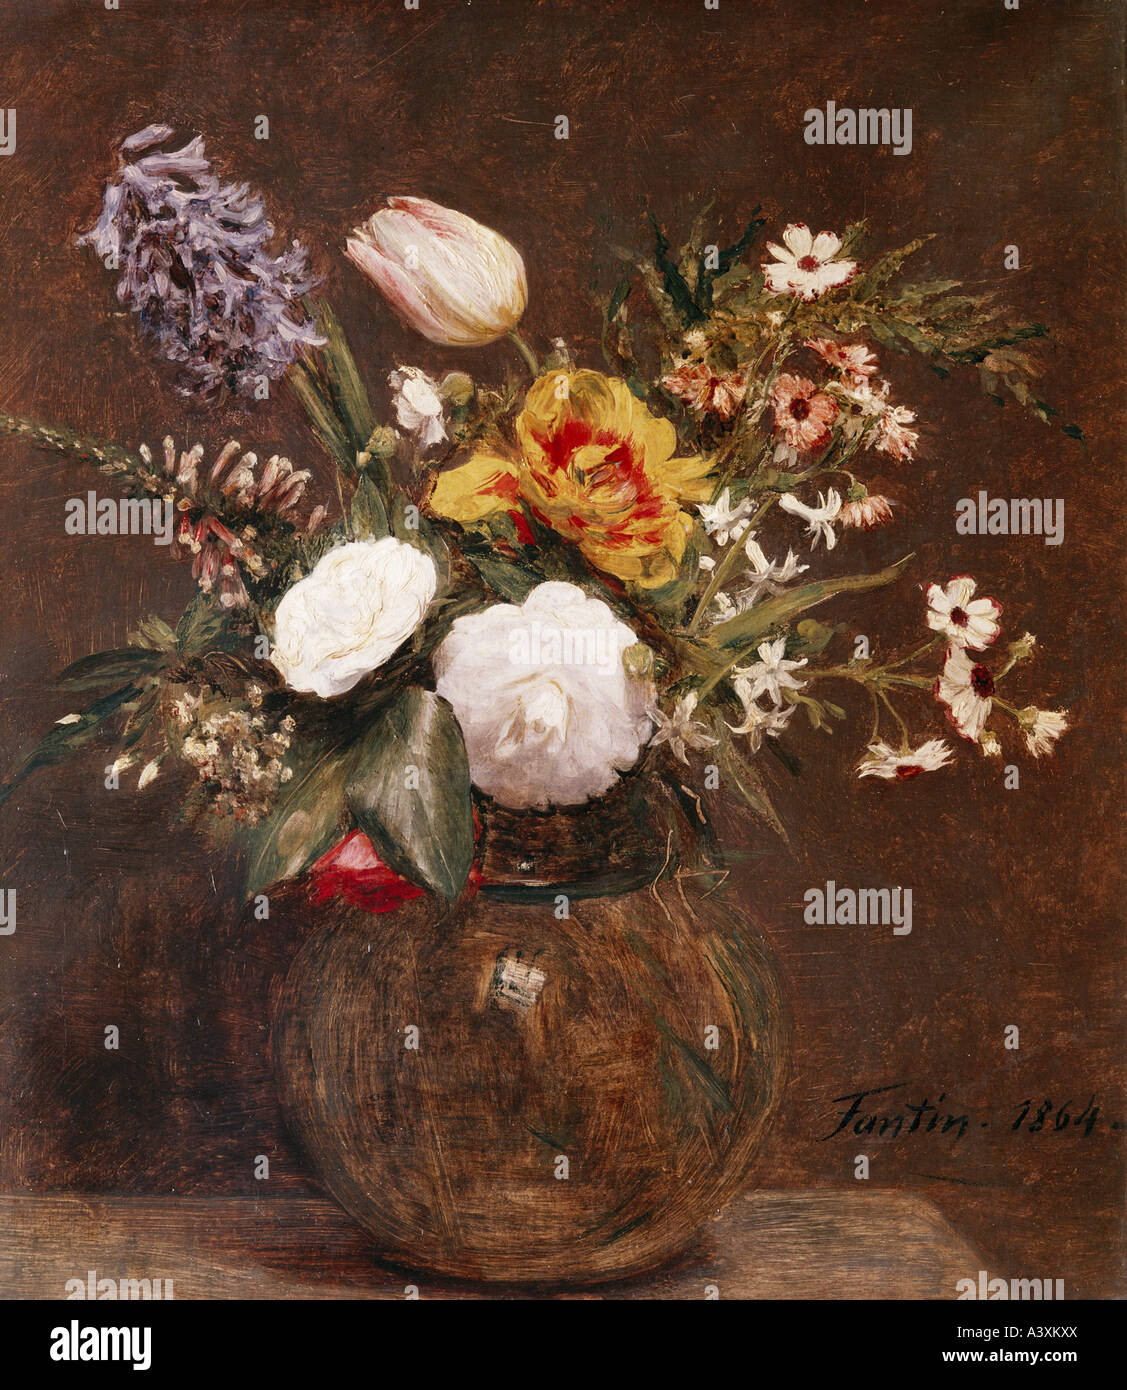 'fine arts, Fantin-Latour, Henri, (1836 - 1904), painting, 'flower still life', 1864, Victoria and Albert - Stock Image